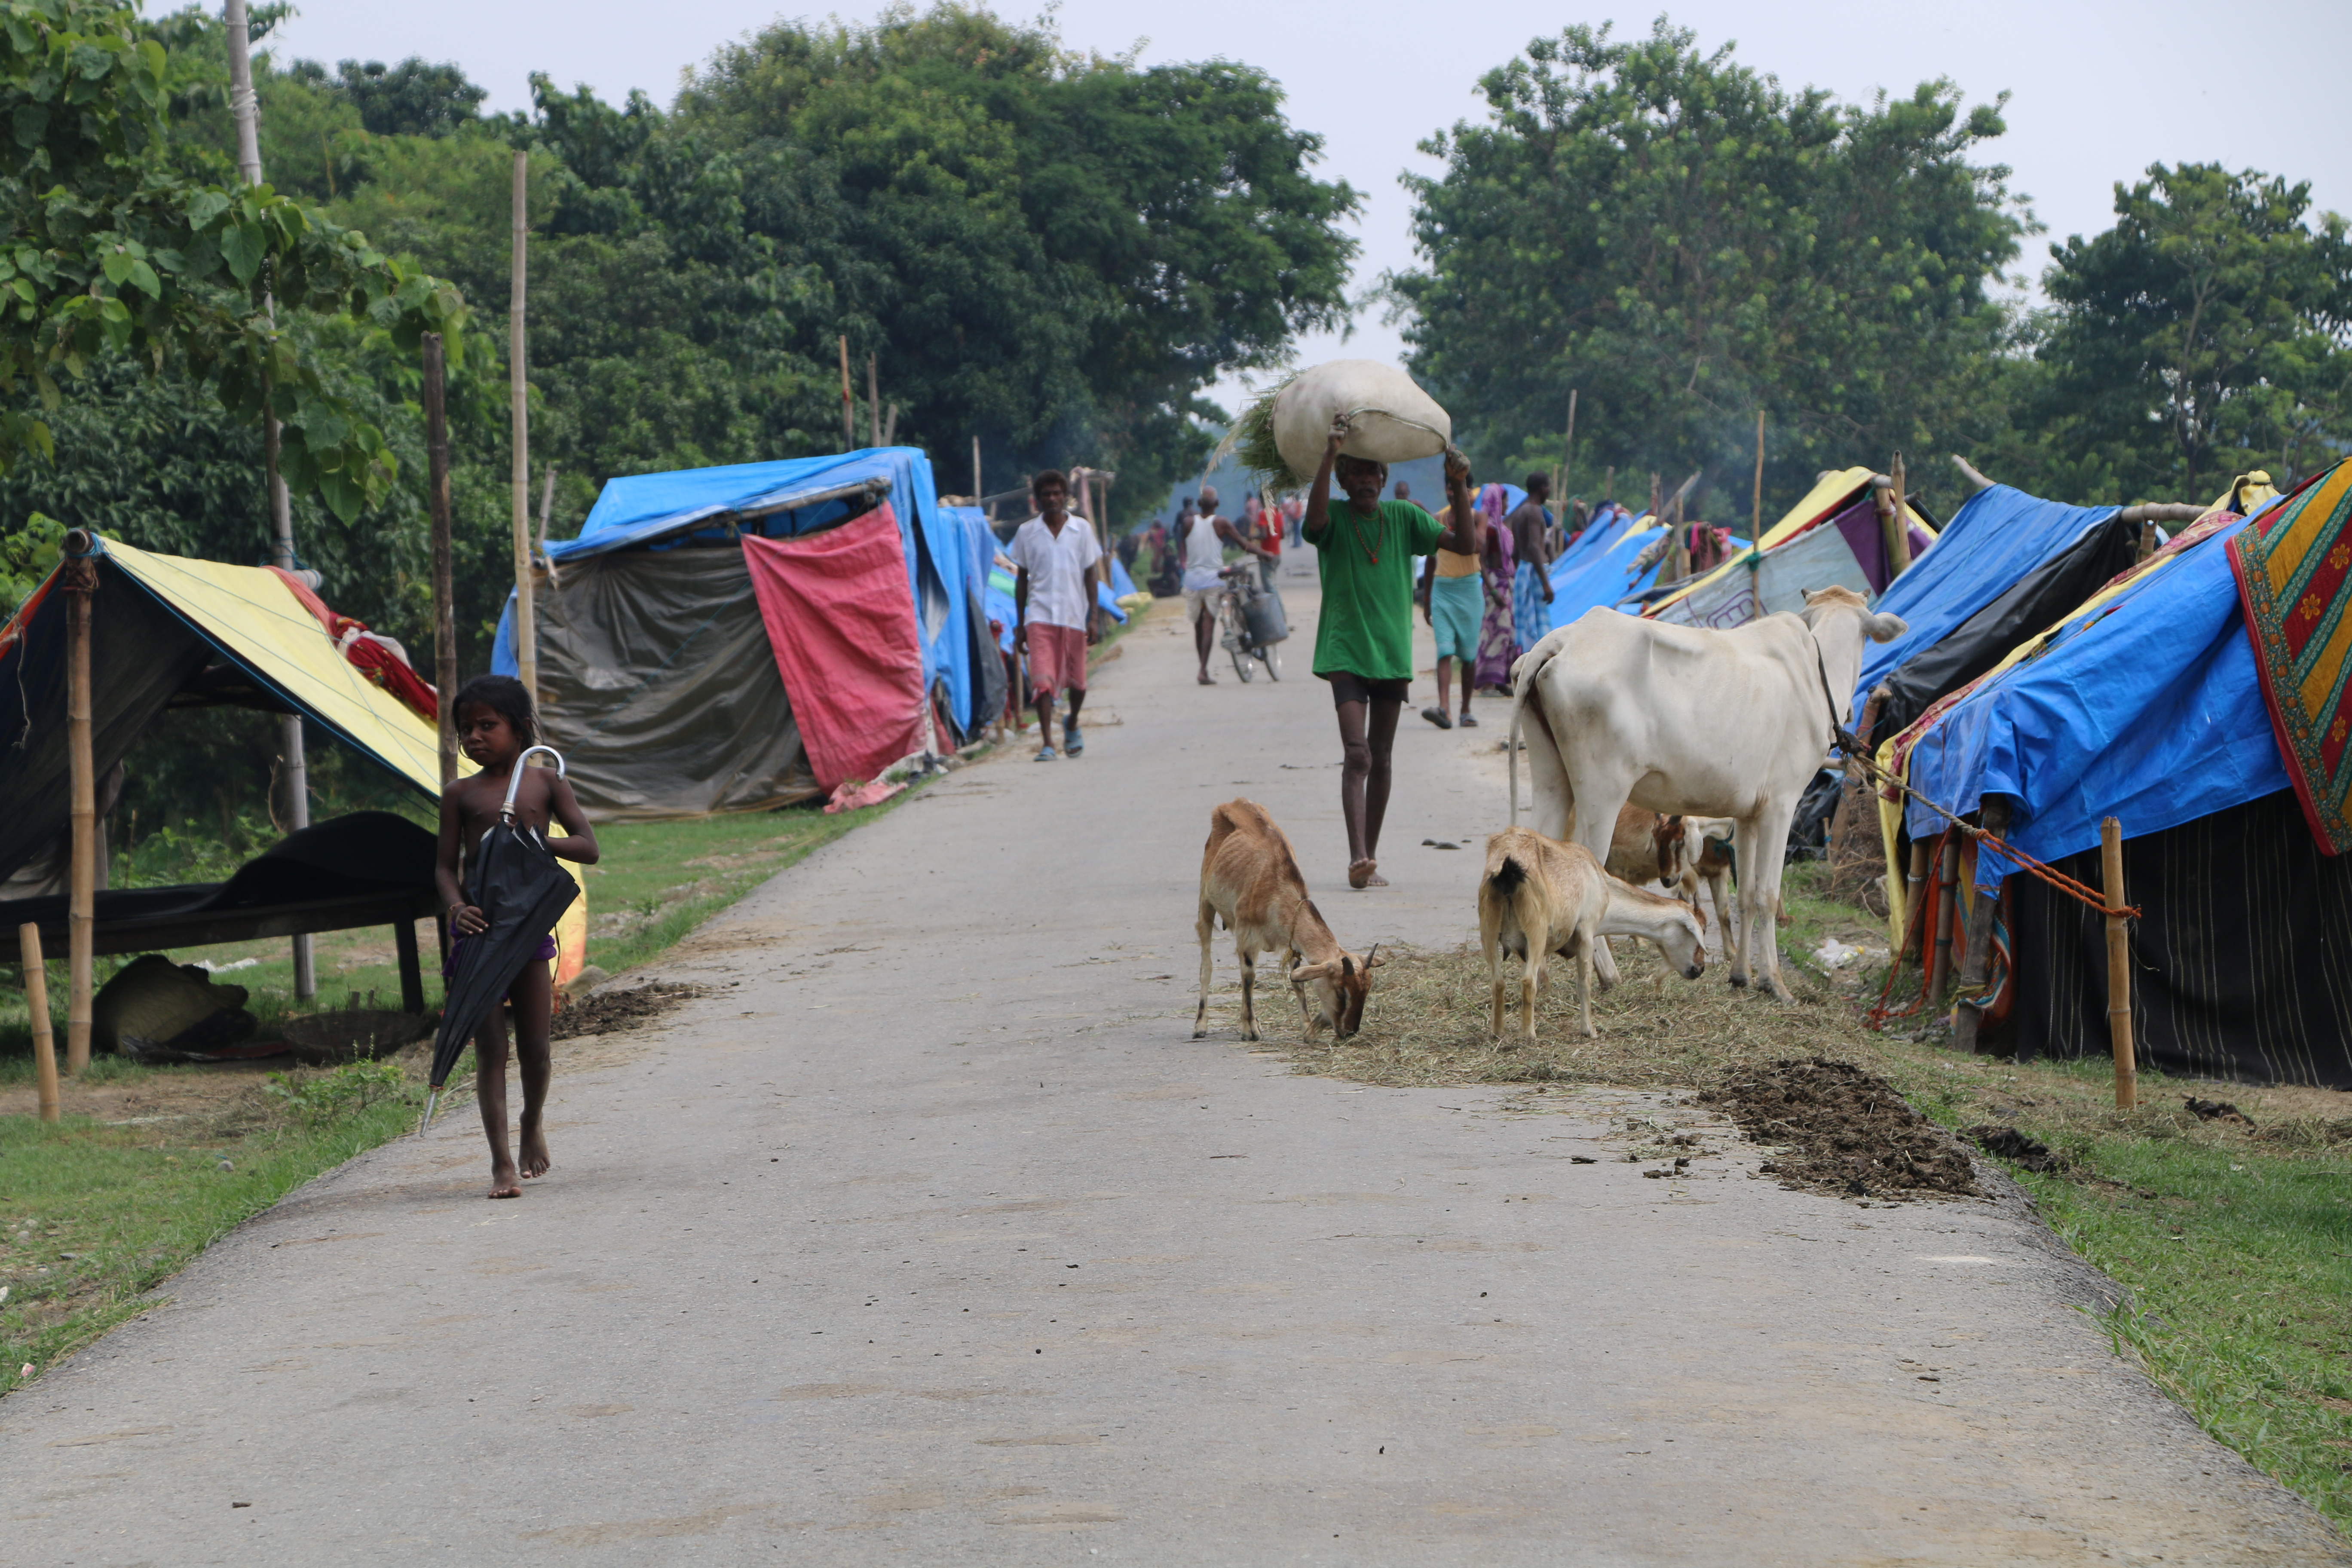 People and cattle on an embankment in Saptari district